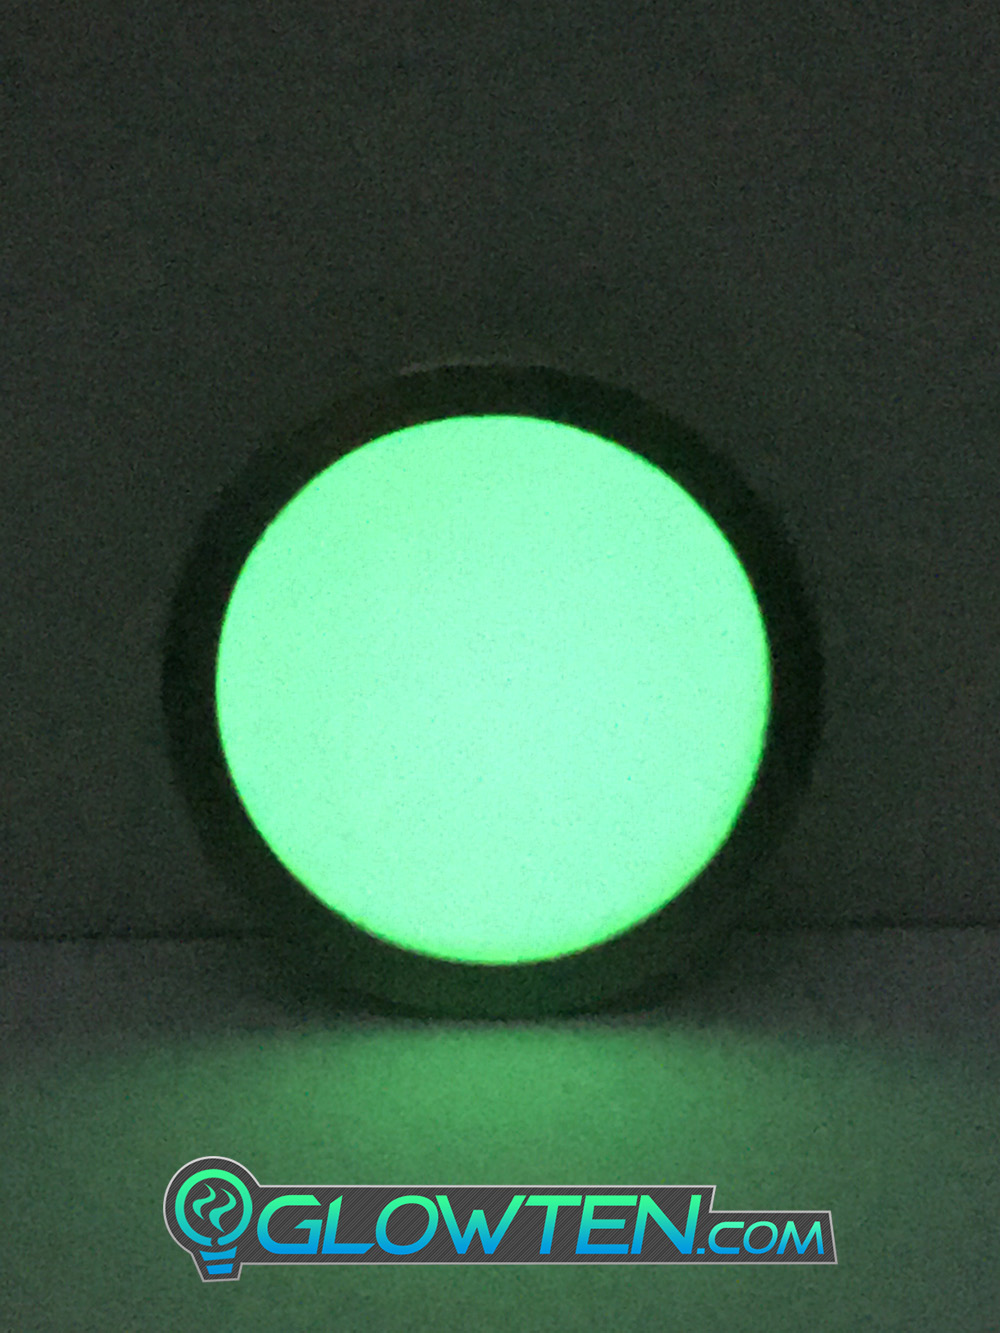 GLOWTEN.com - Night Vision ROUND CIRCLE Glow in the Dark Safety Sign With Stainless Steel Toughened Glass Rim Dot Ground Guide Chip Marker Plaque picture photo cap preview pic image search 2